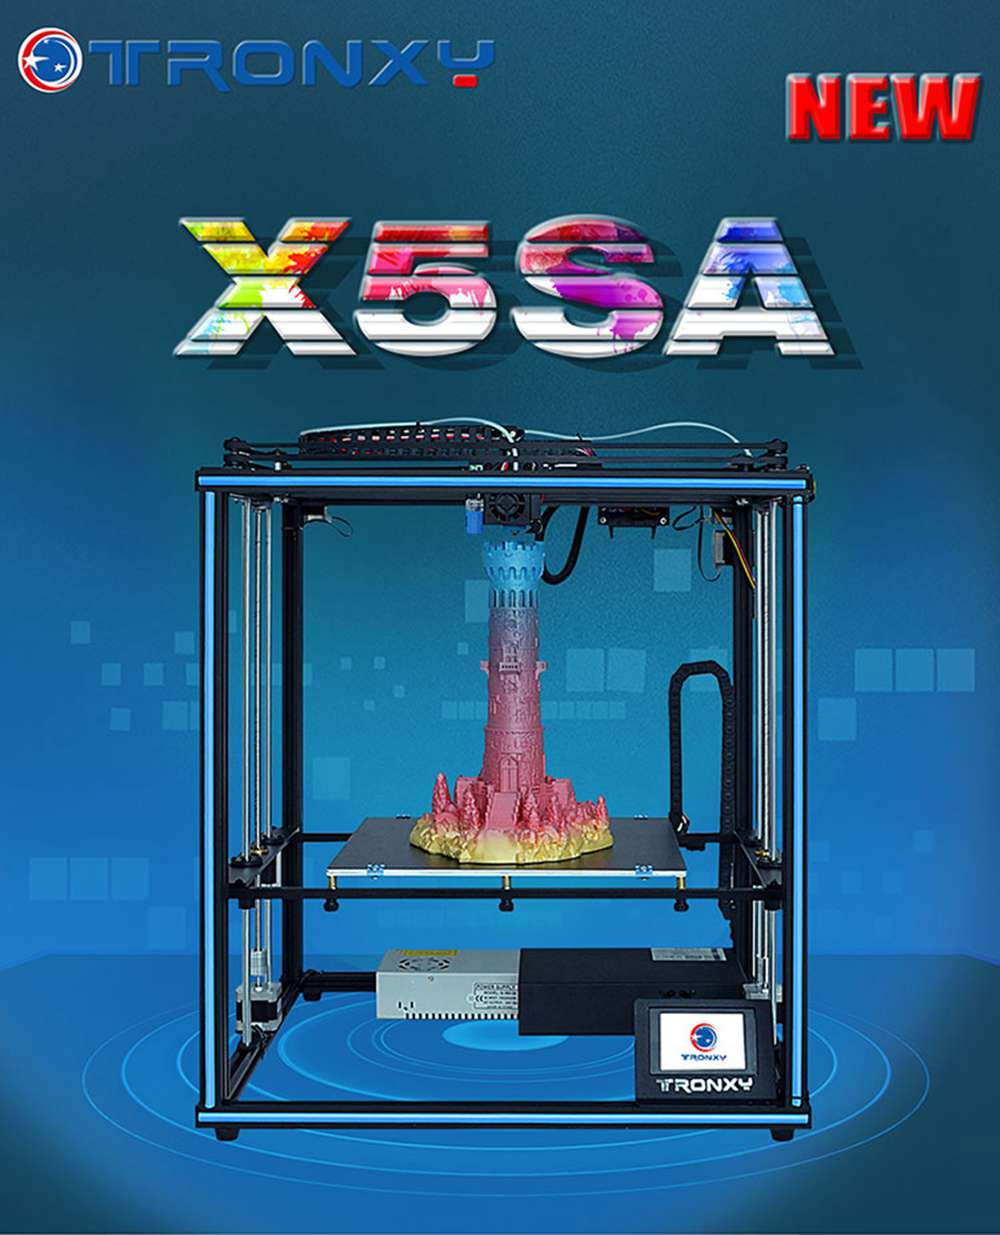 TRONXY X5SA 24V 3D Printer 330 x 330 x 400mm Auto Leveling Filament Sensor Resume Print Function